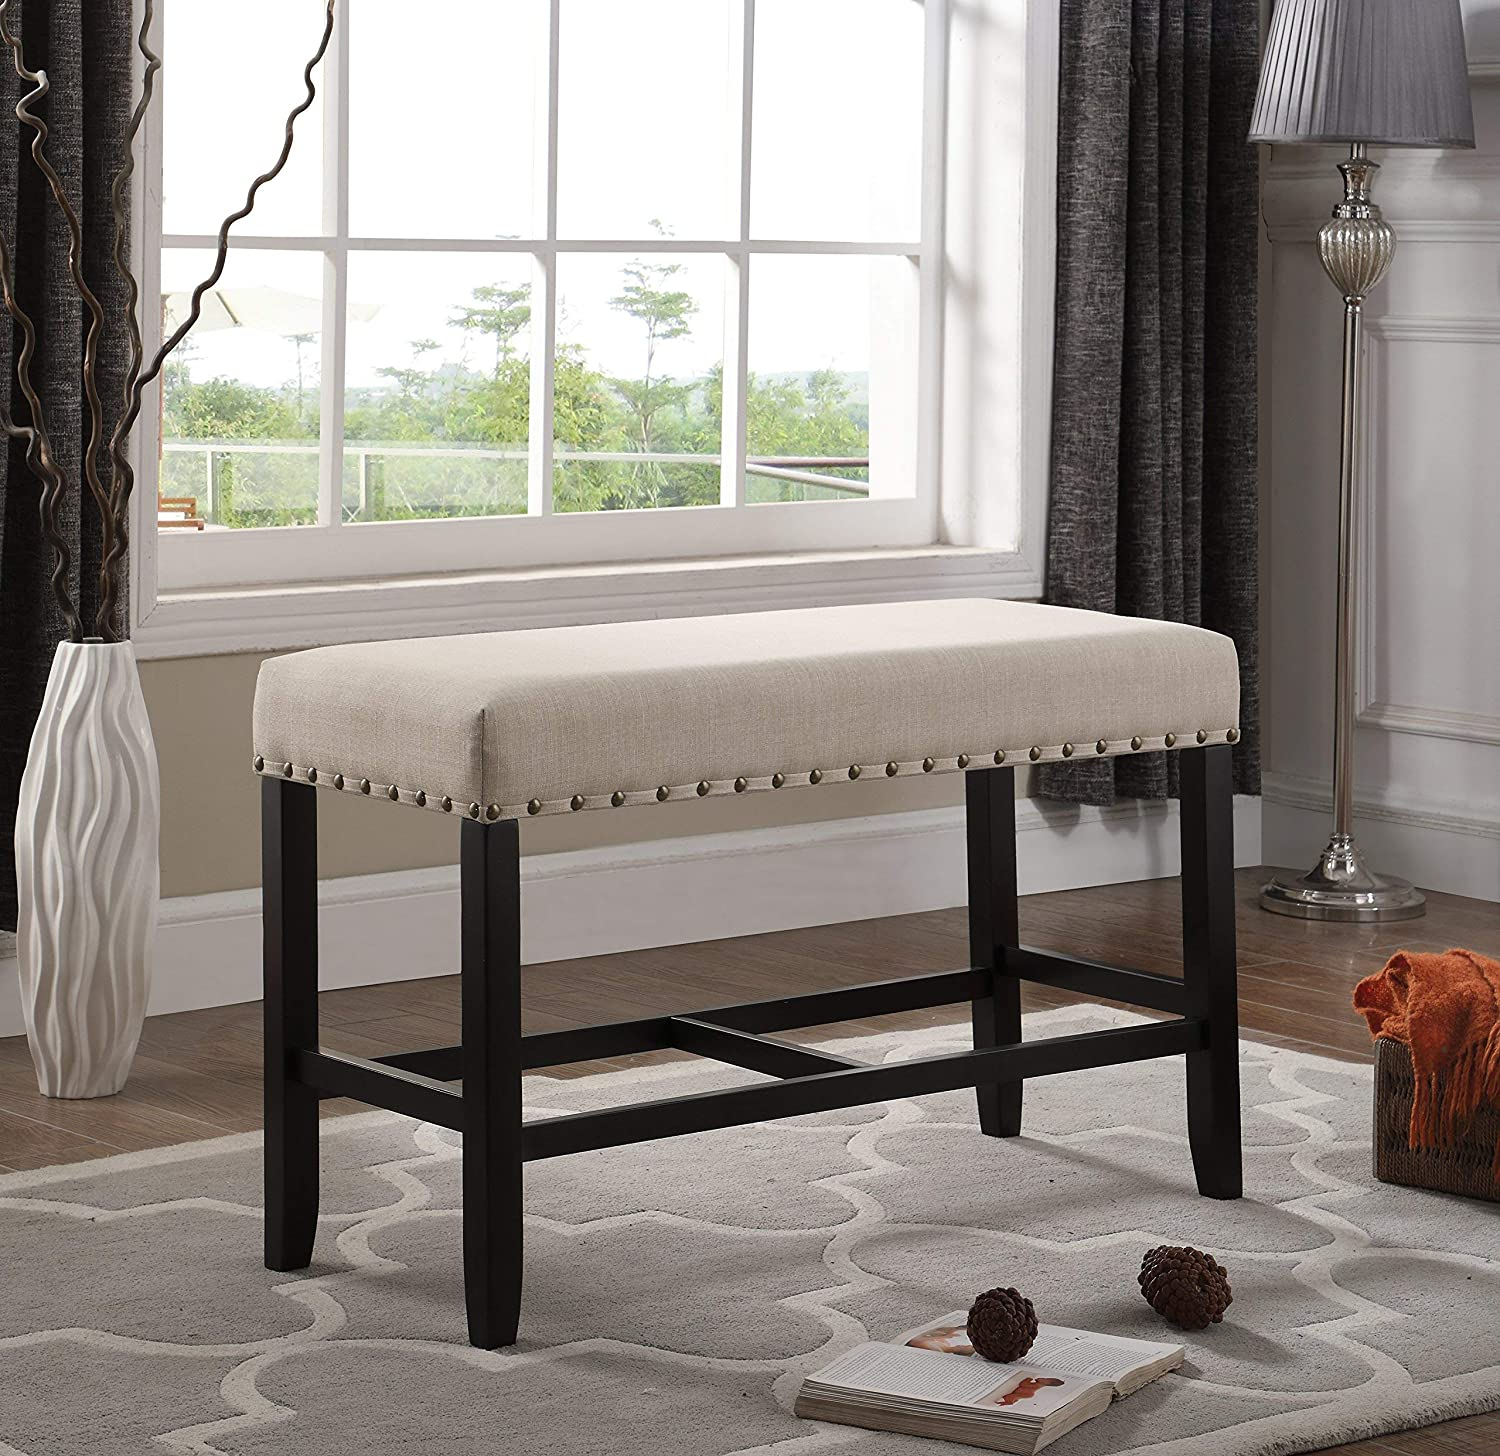 Tan Roundhill Furniture PB162TA Biony Fabric Counter Height Dining Bench with Nailhead Trim